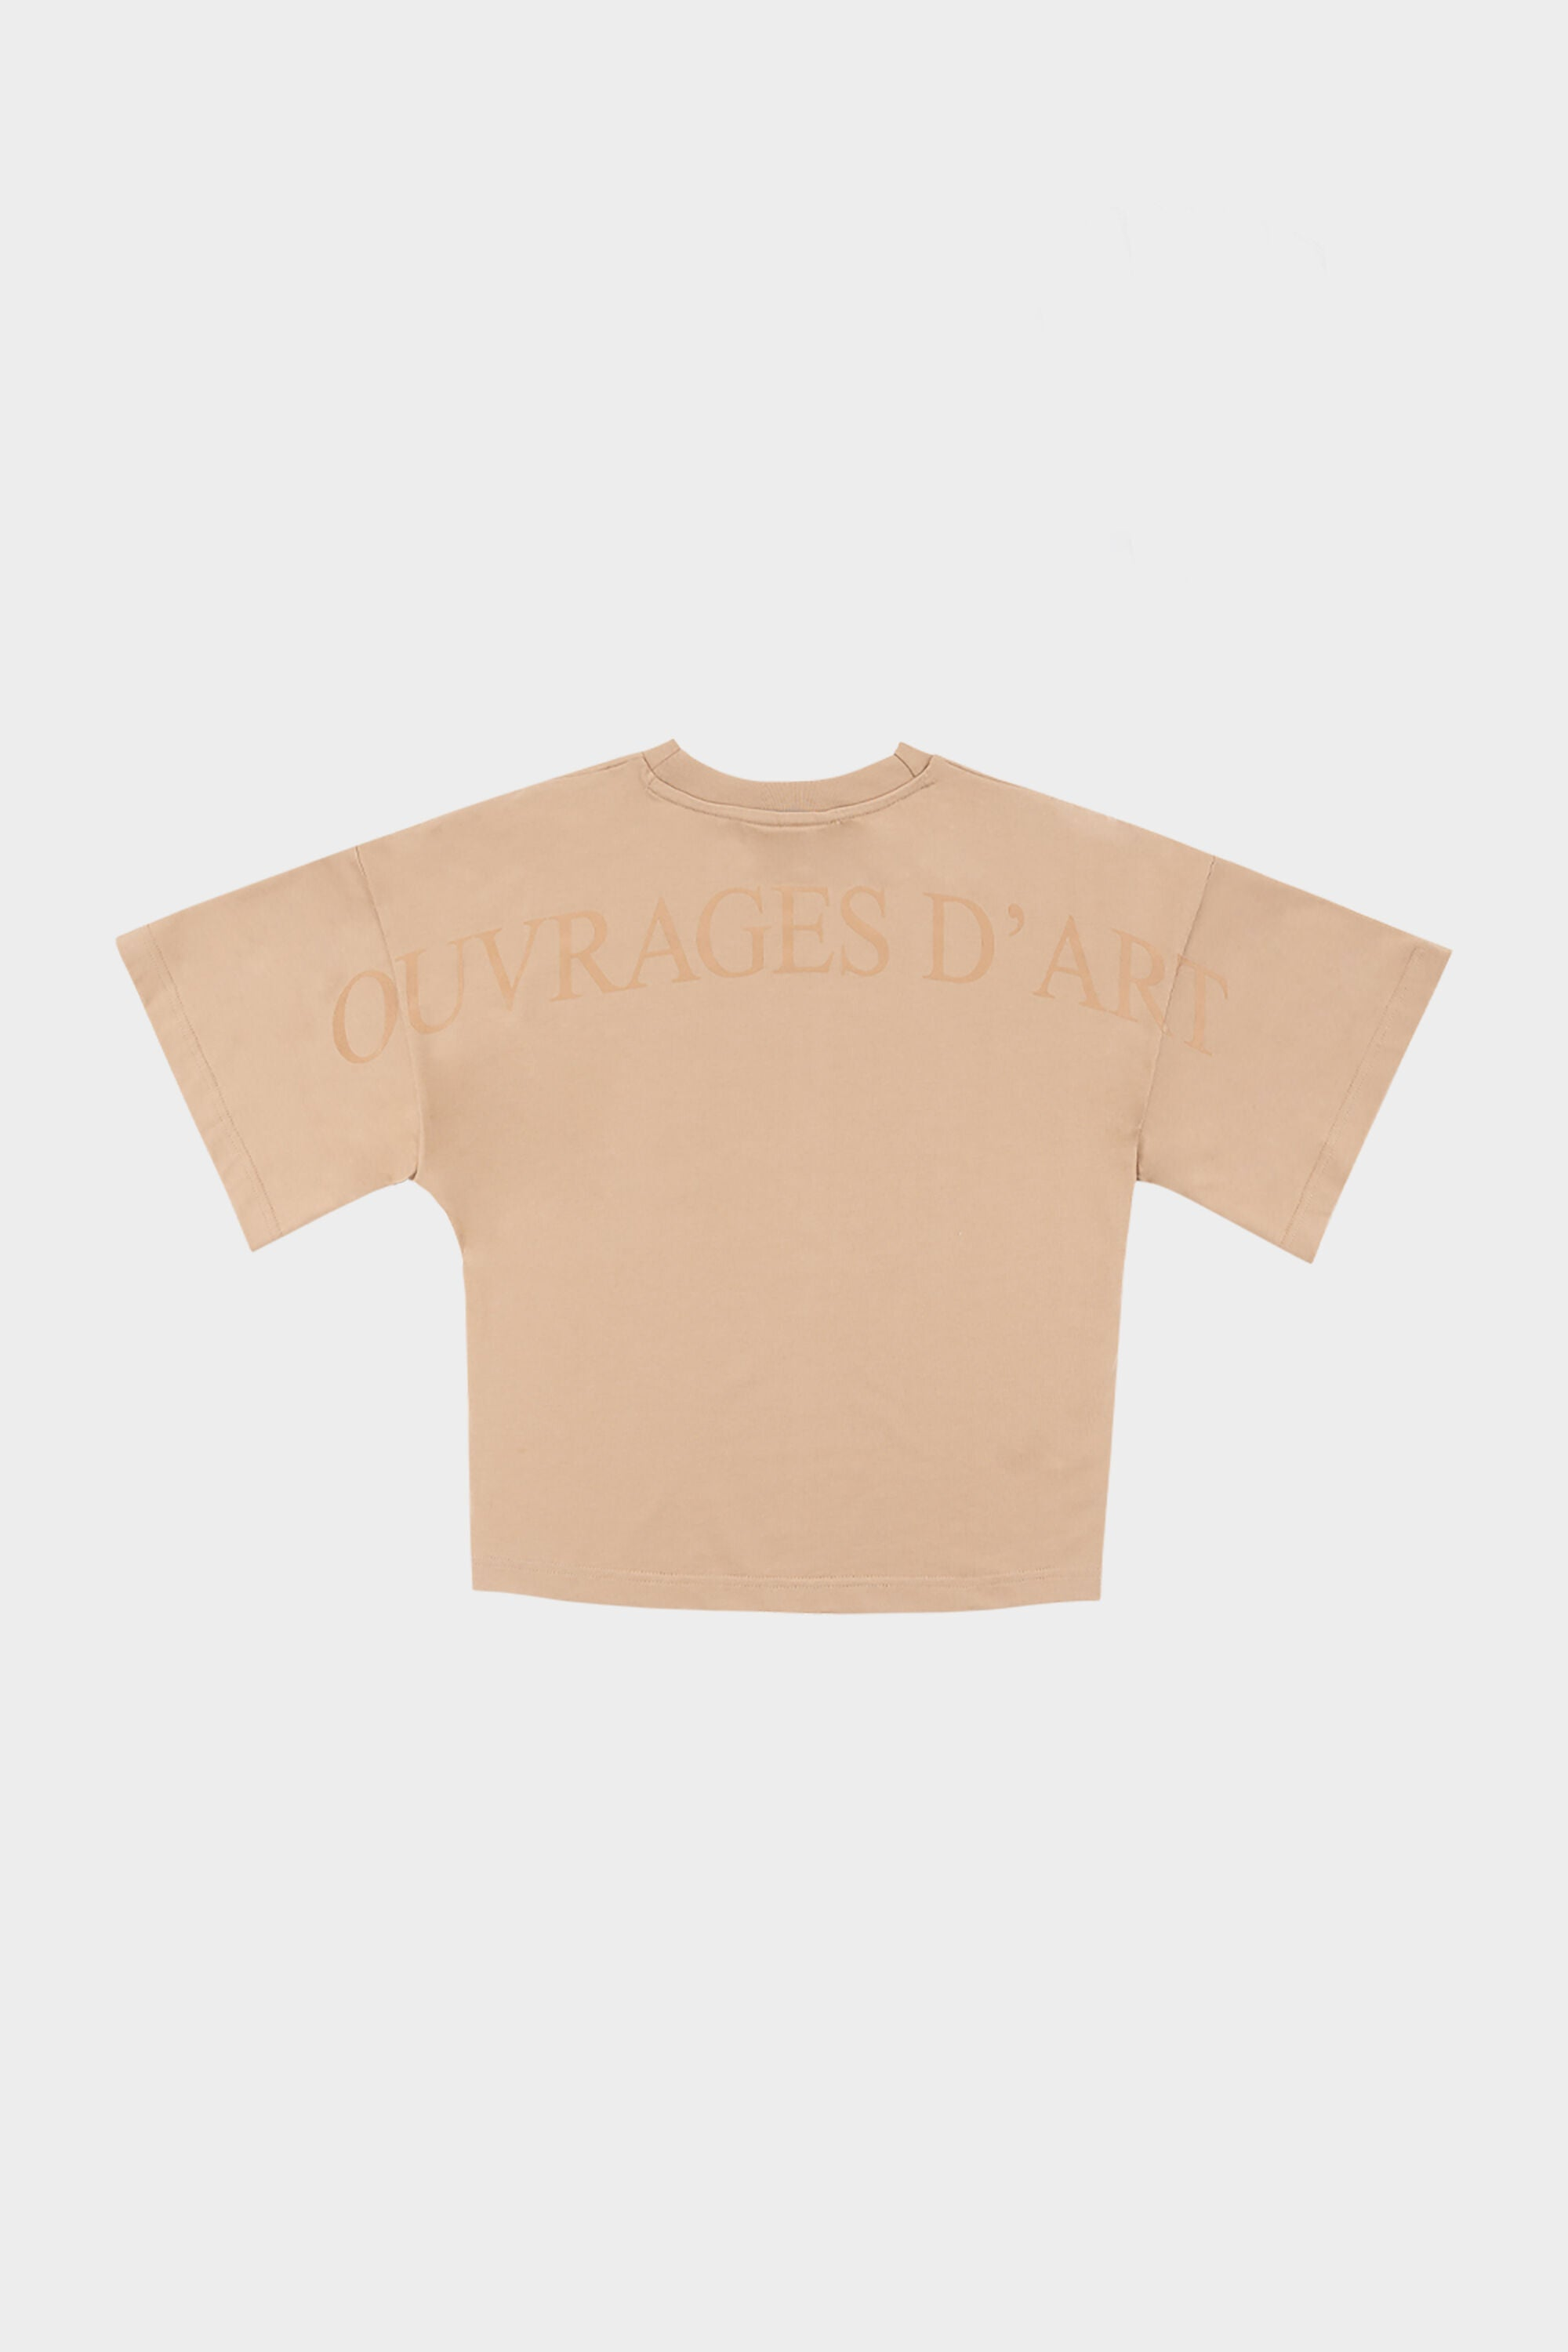 Ouvrages D'Art Wide Croped Tee  Pepper